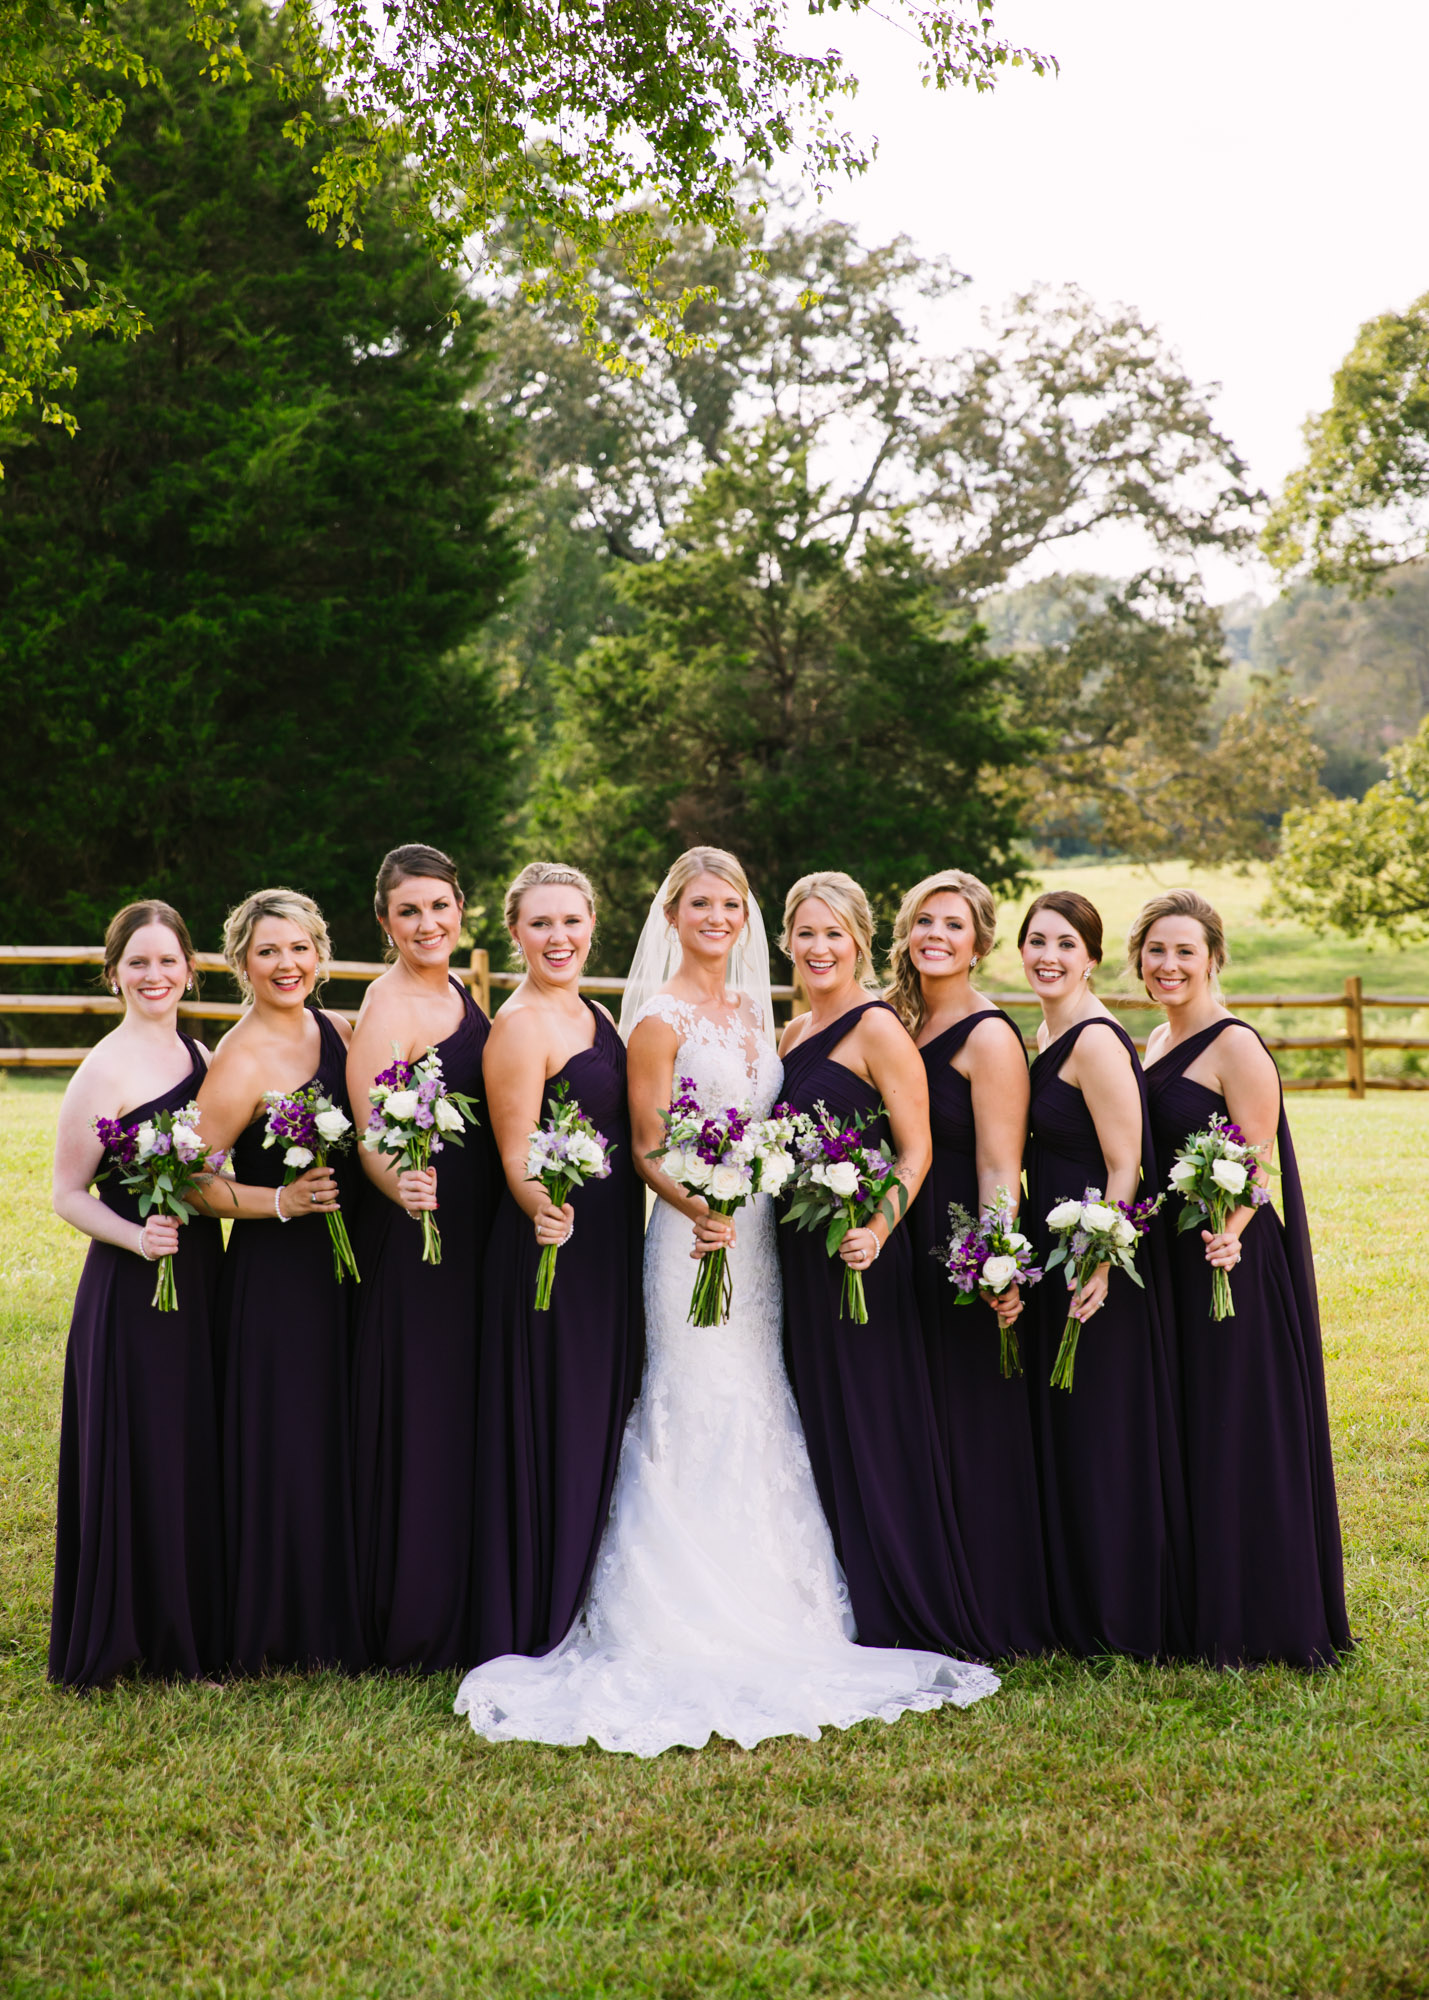 Waynesville, NC Wedding Photography | Bridal Party Portrait